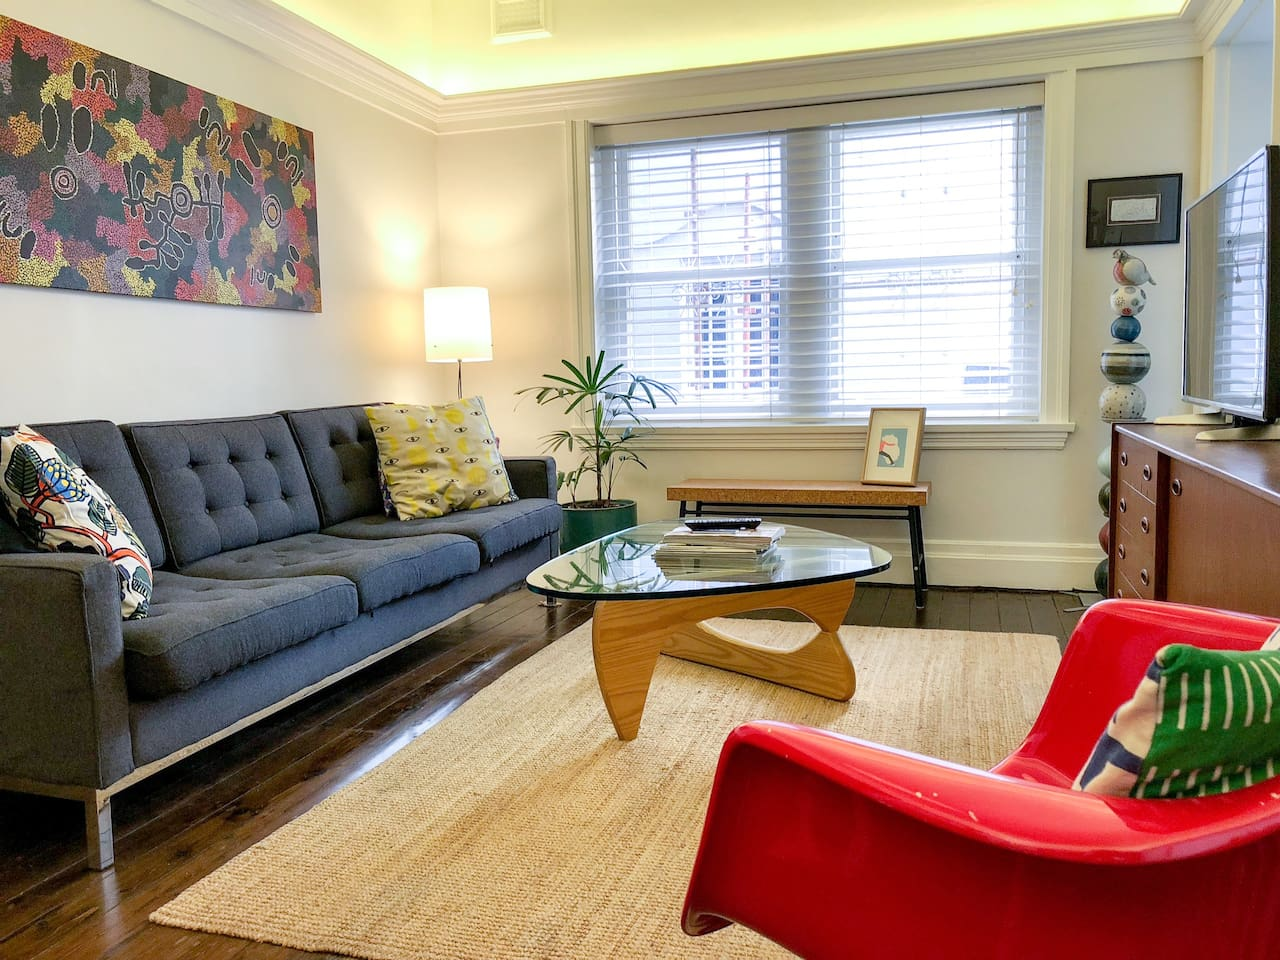 Comfortable living area, perfect for resting after a day exploring the local area and city